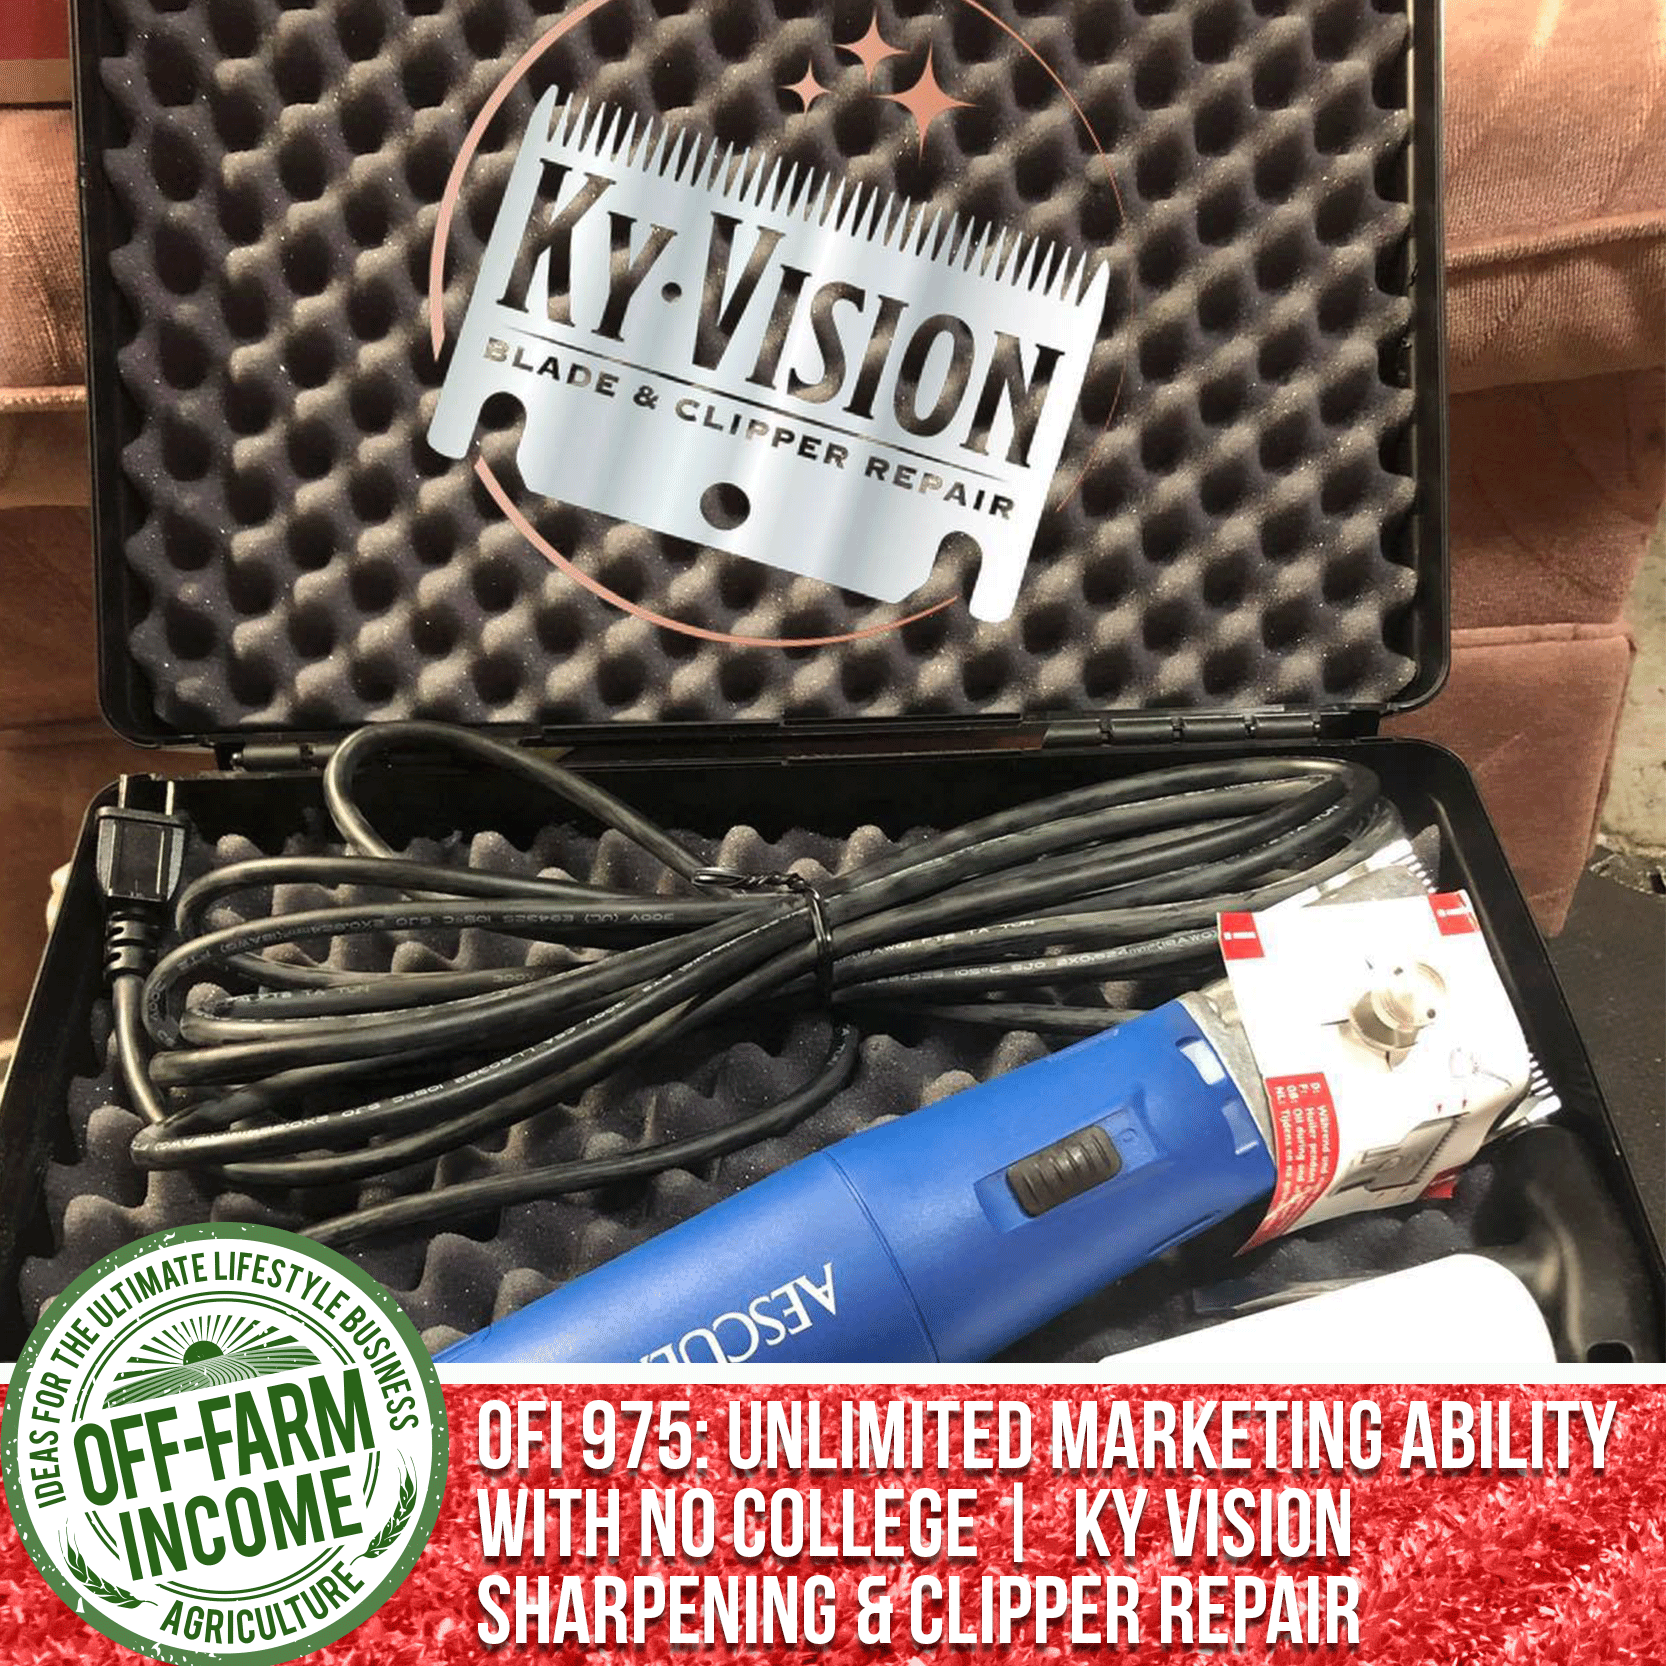 OFI 975: Unlimited Marketing Ability With No College | Kyle Stockdale | KY Vision Sharpening & Clipper Repair